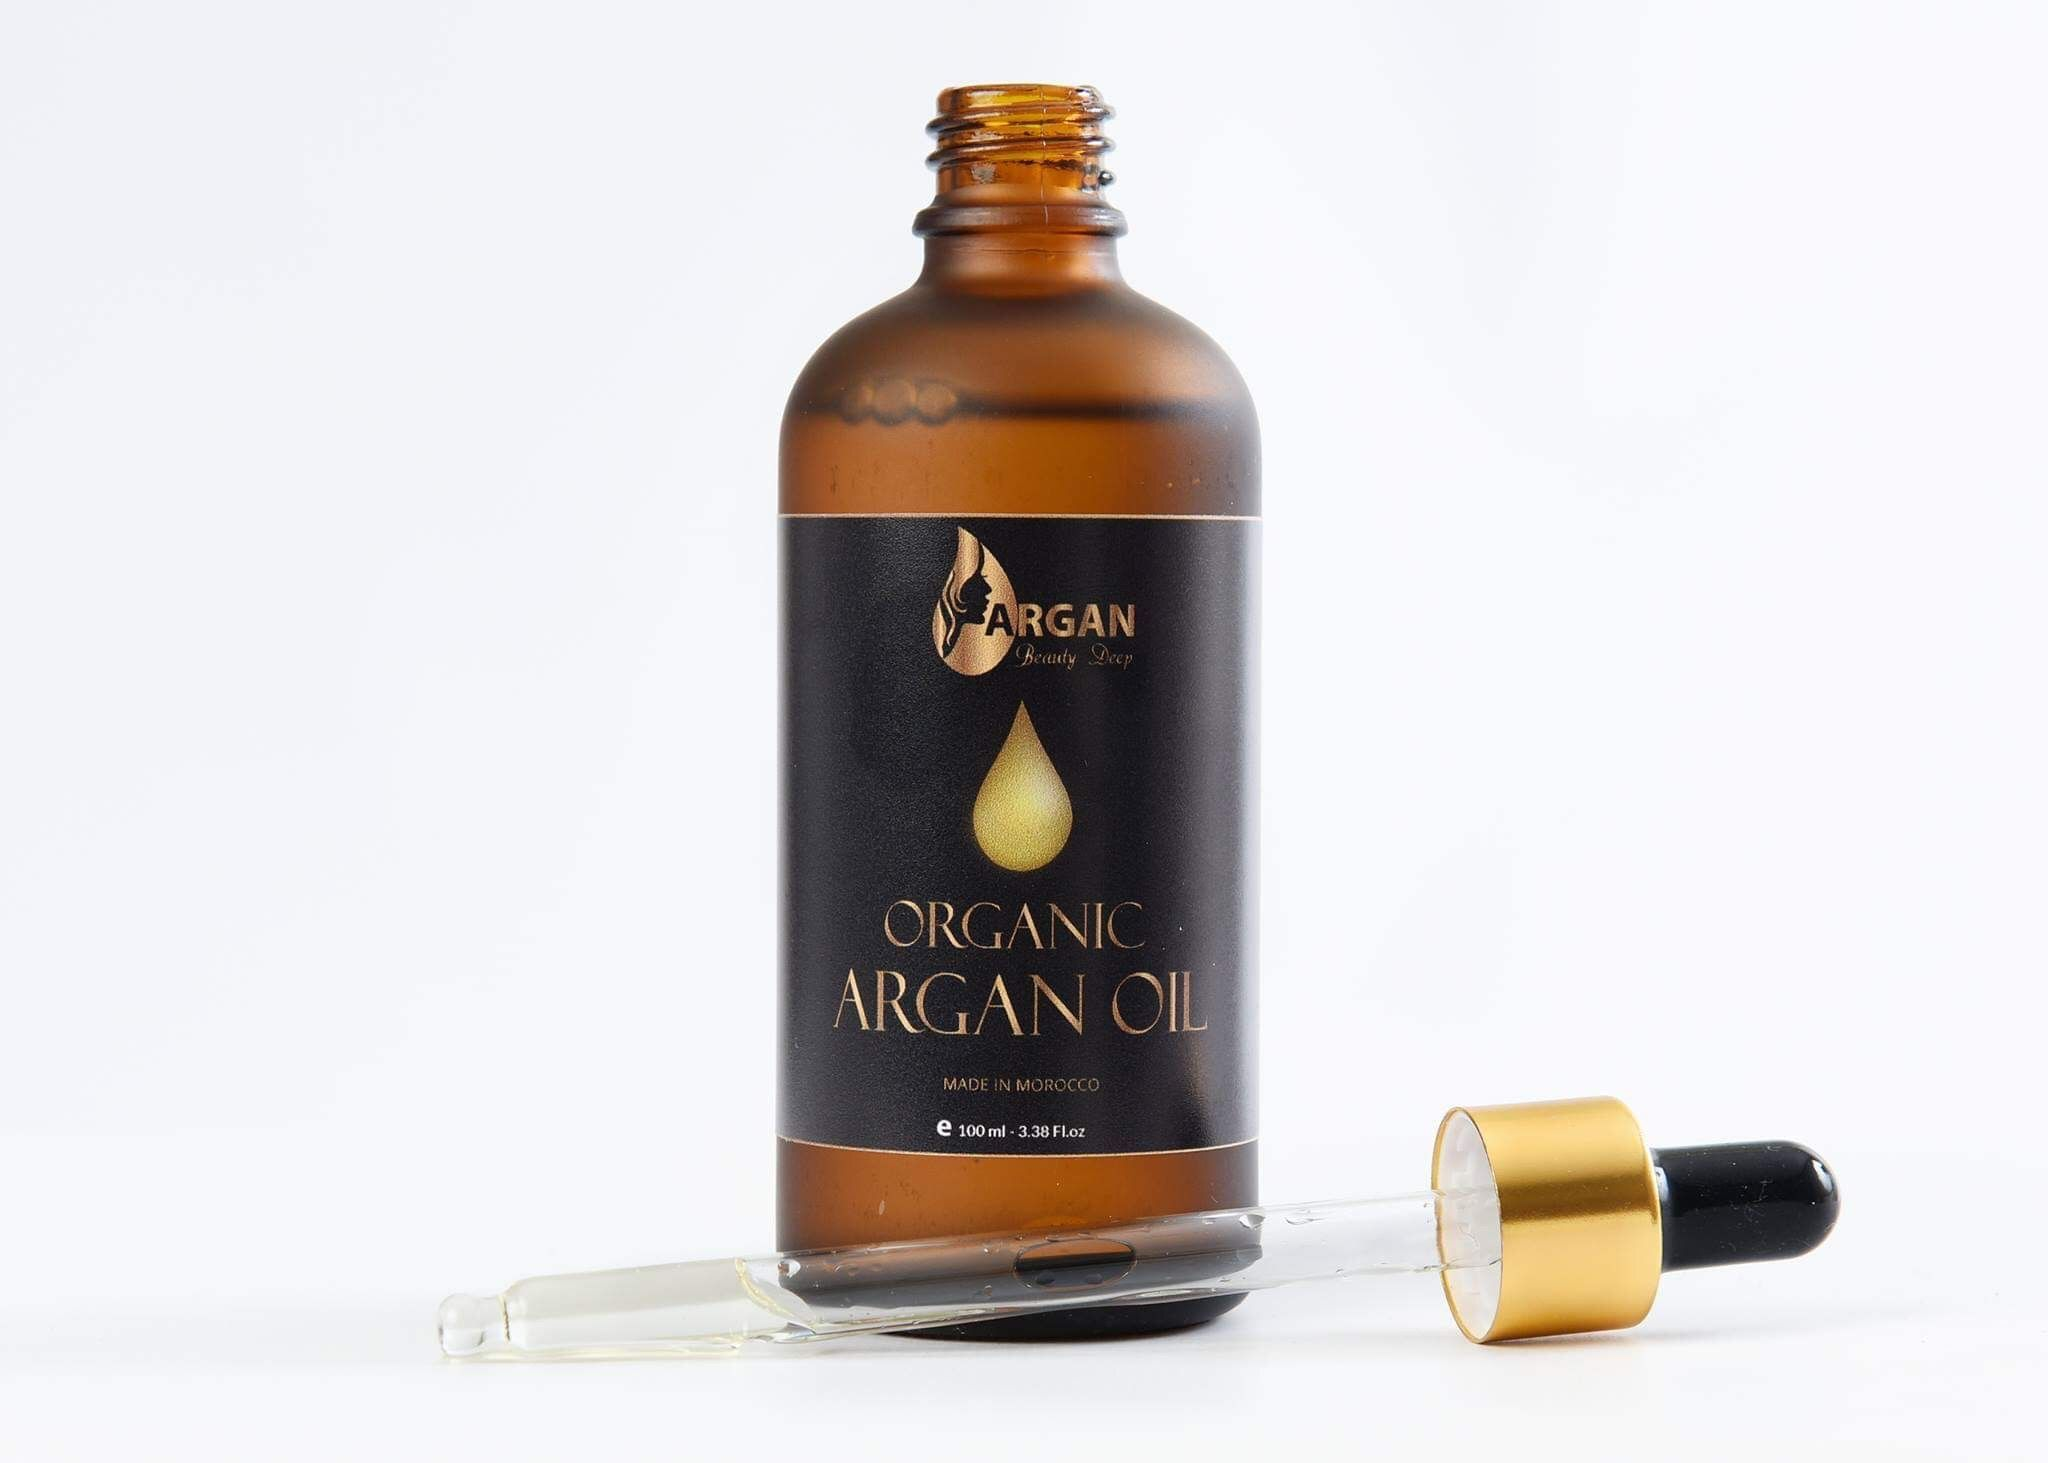 The beast Argan Oil for,your skin and hair you can buy